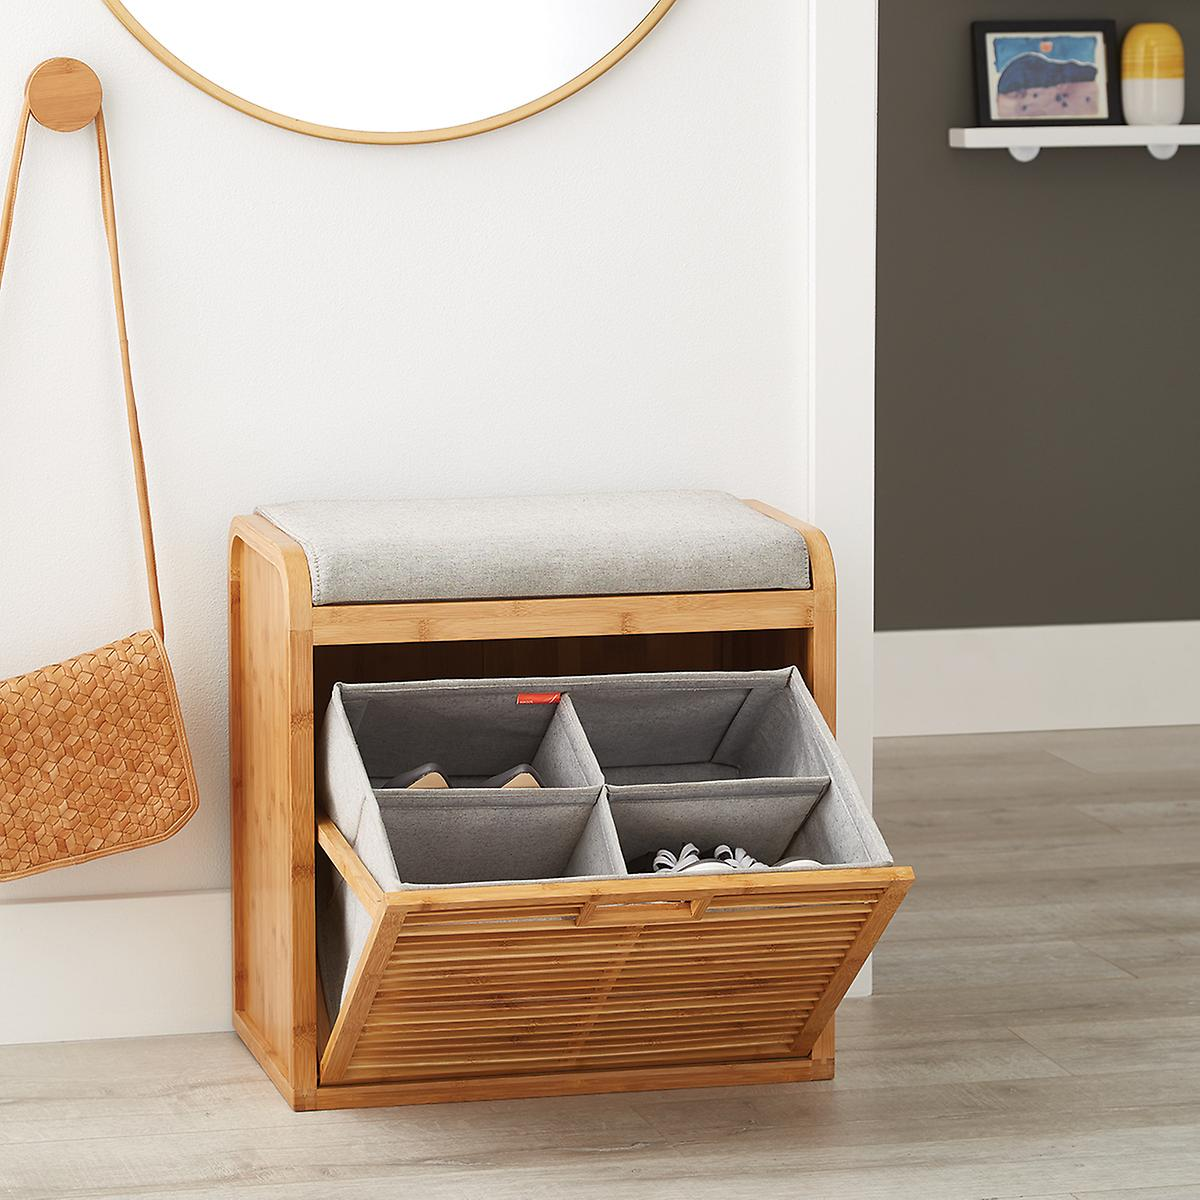 Image result for lotus bamboo storage bench